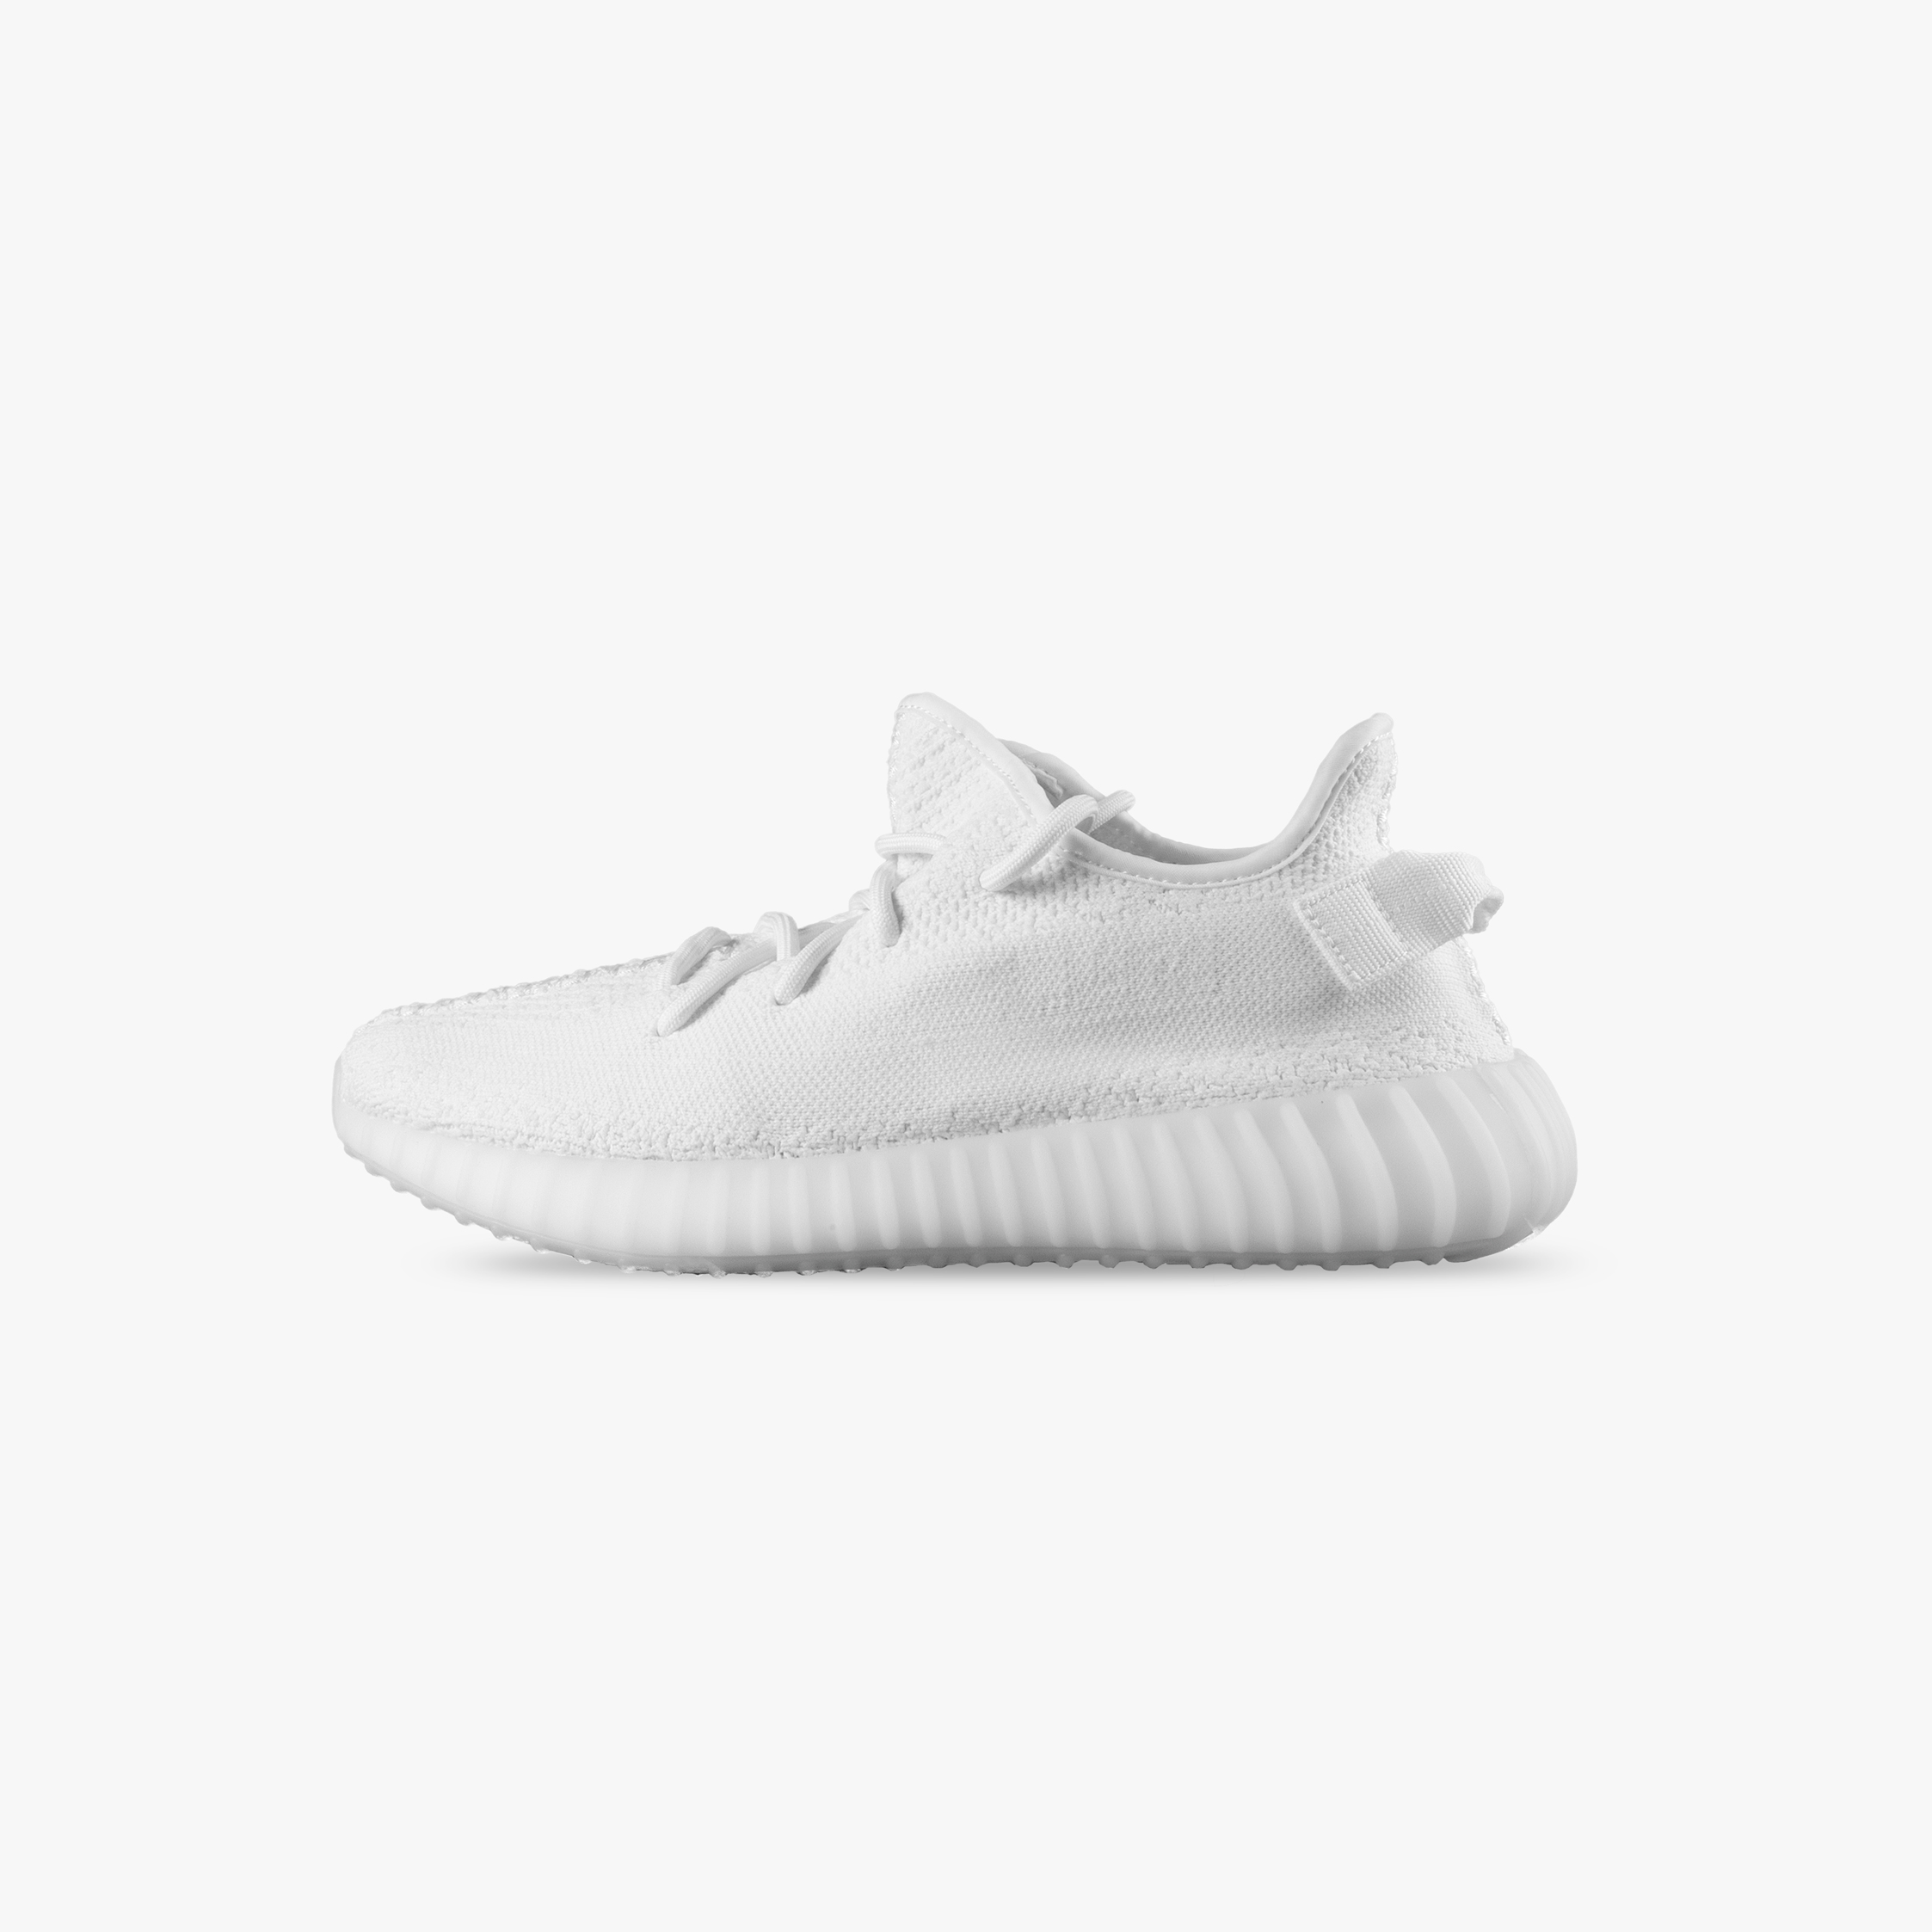 innovative design 0f3fb f41b9 Adidas Yeezy Boost 350 V2